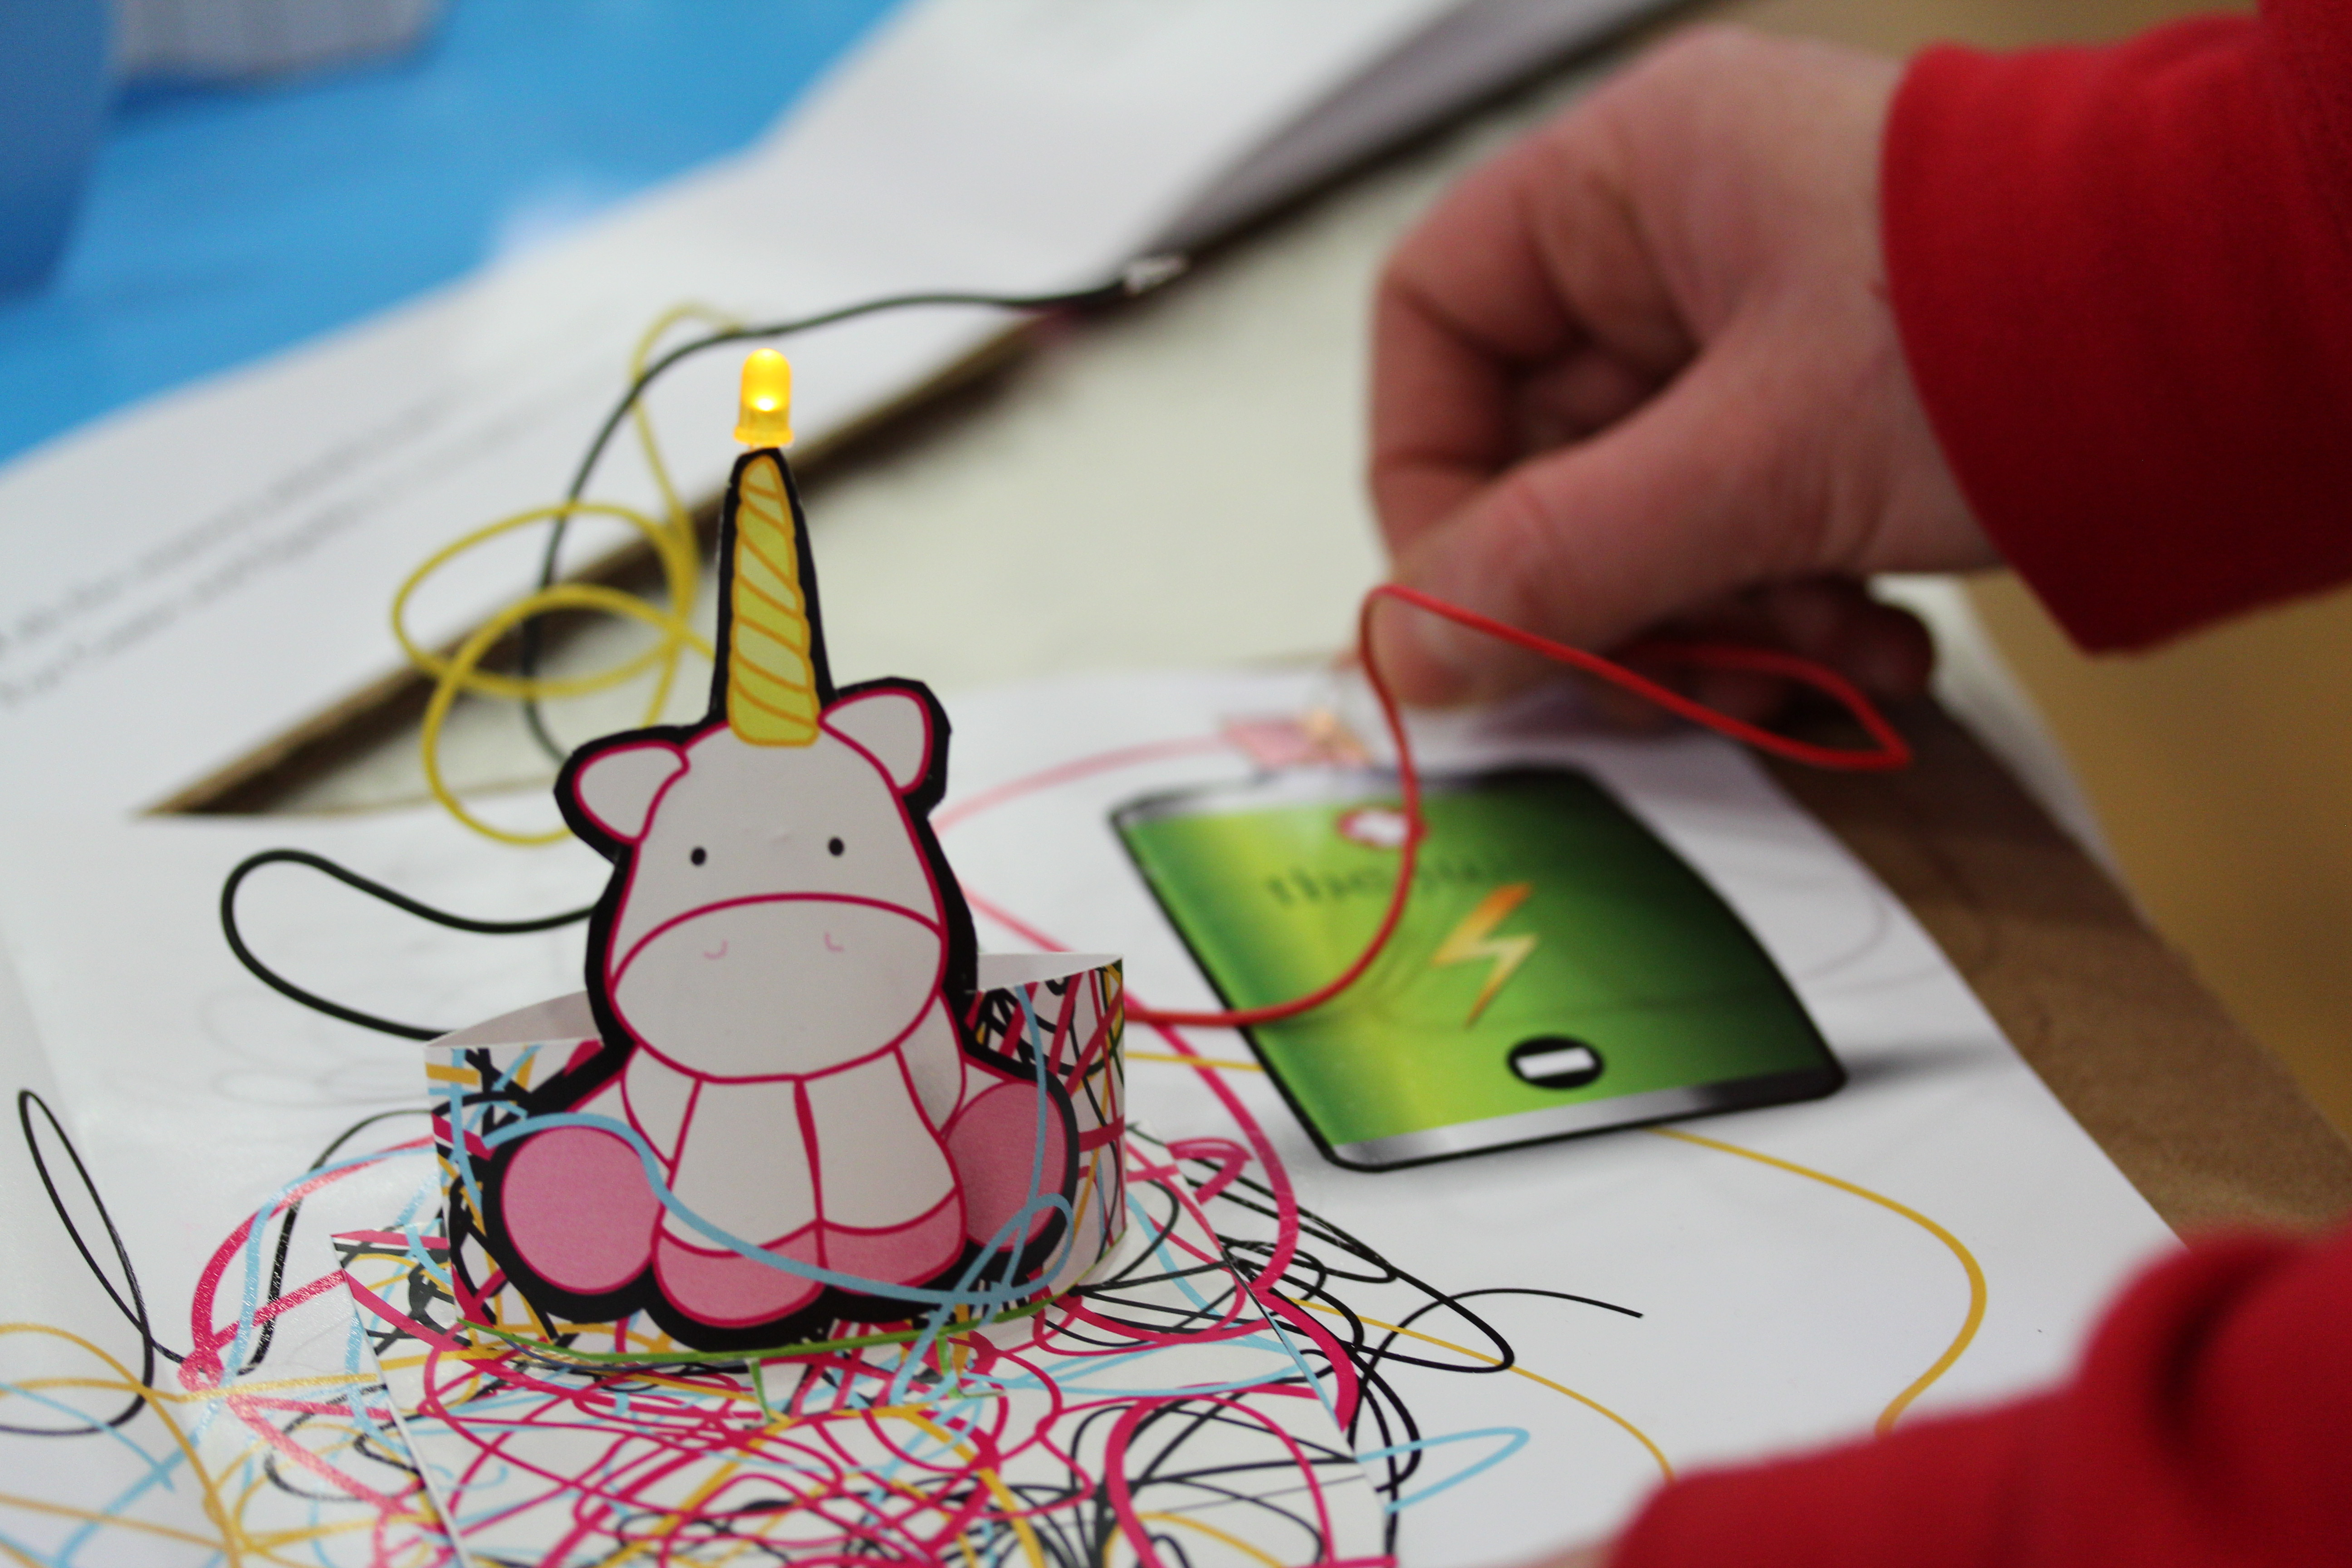 Project Daffodil Uses Electronics to Create Interactive Pop-Up Books